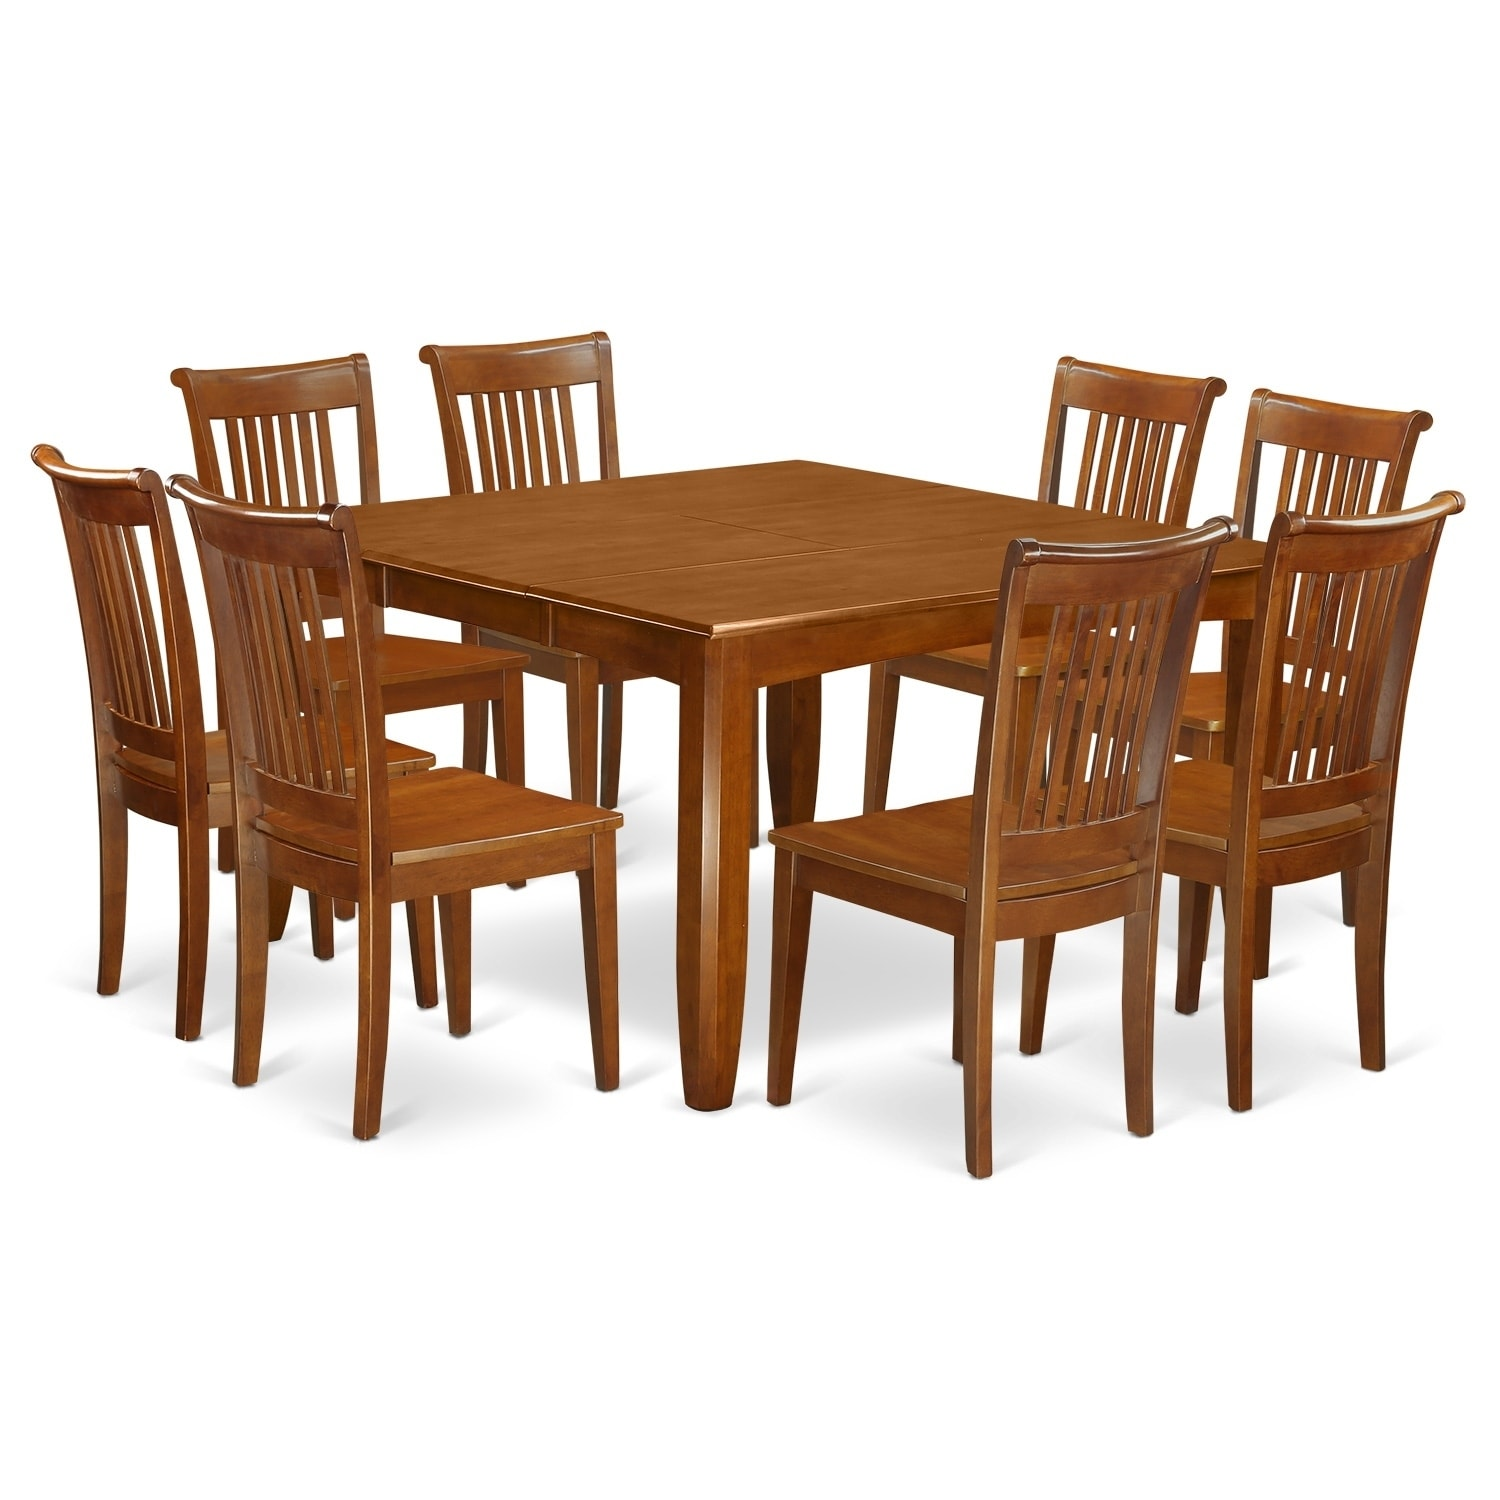 PFPO9 SBR 9 Pc Dining Room Set Table With Leaf And 8 Kitchen Chairs.